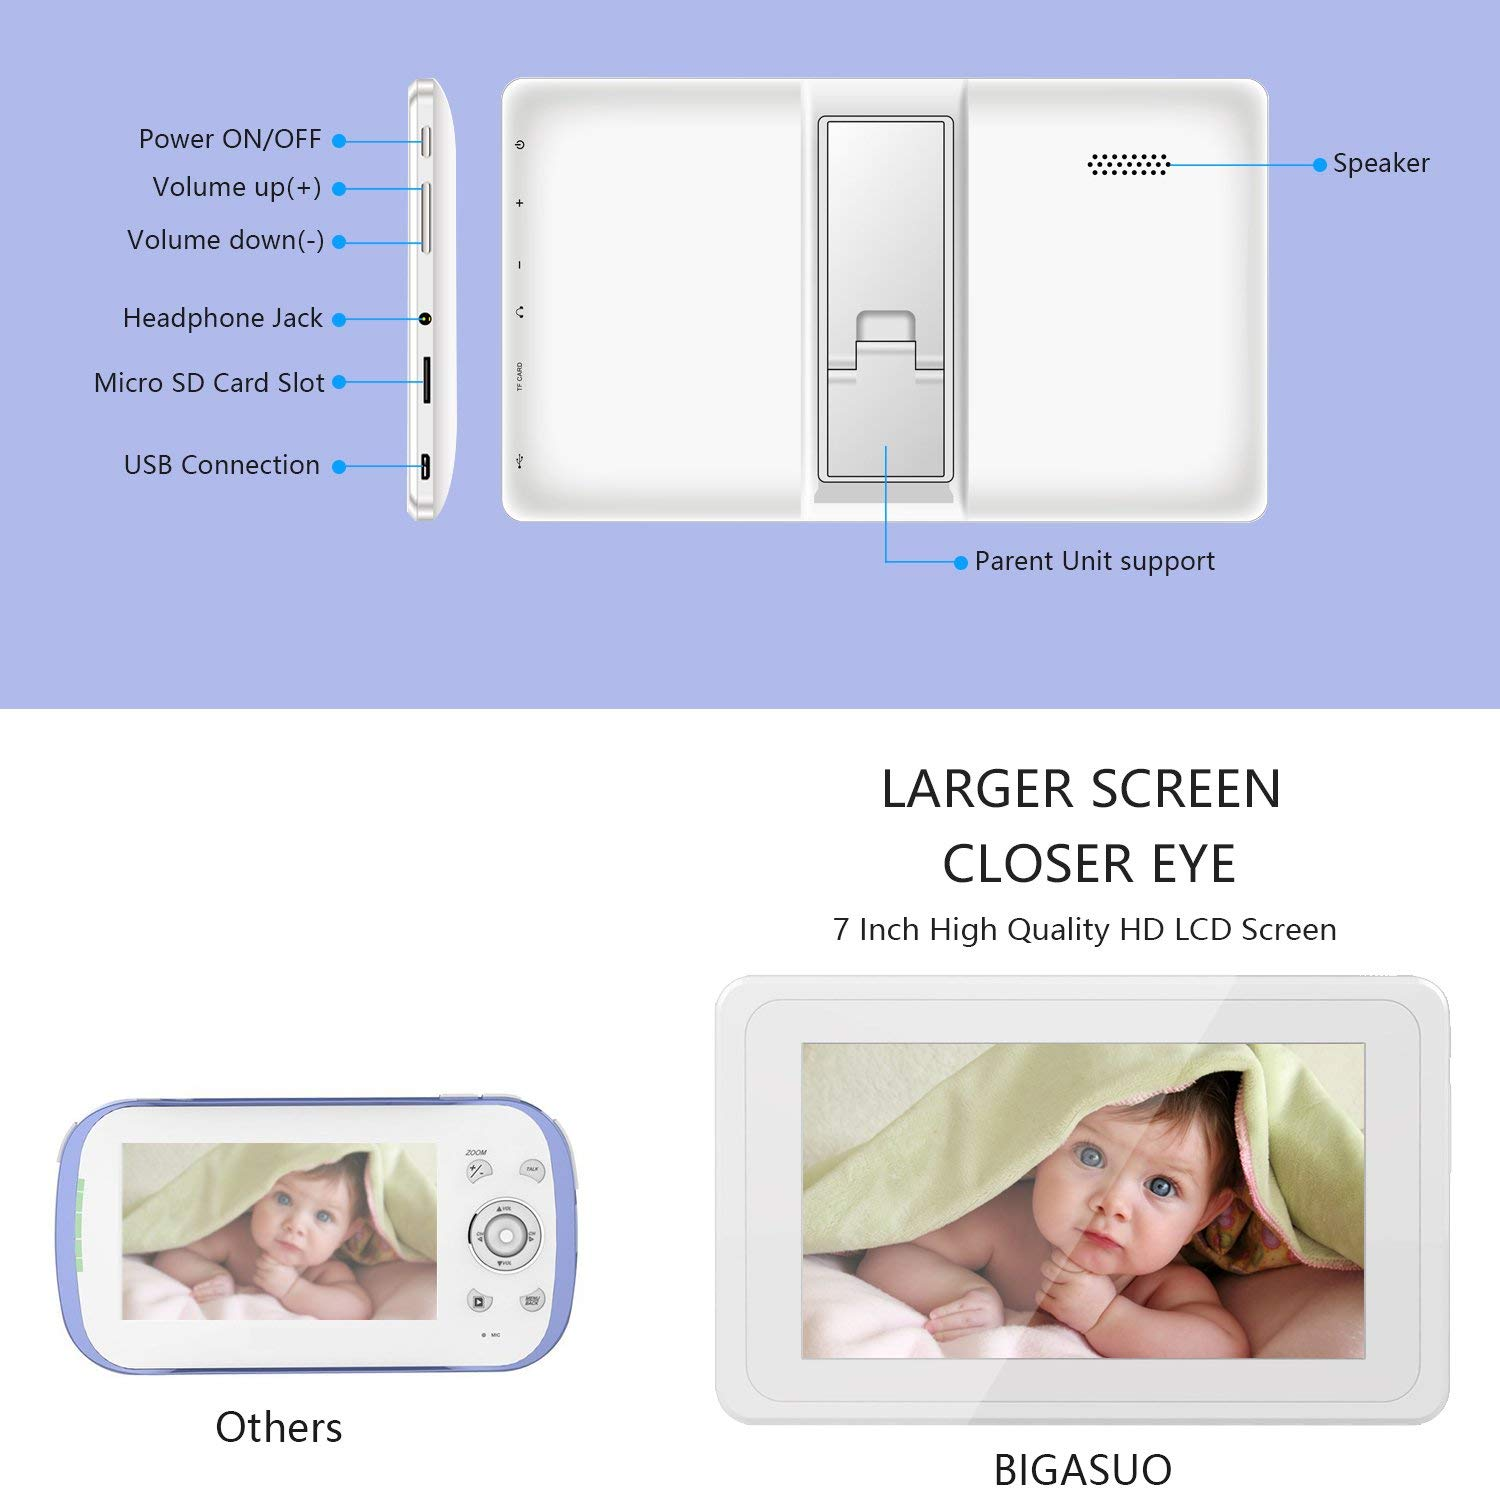 BIGASUO Upgrade Baby Monitor, Video Baby Monitor 7'' Large LCD Screen, Baby Monitors with Camera and Audio Night Vision, Support Multi Camera, Two Way Talk Temperature Sensor, Built-in Lullabies by BIGASUO (Image #8)